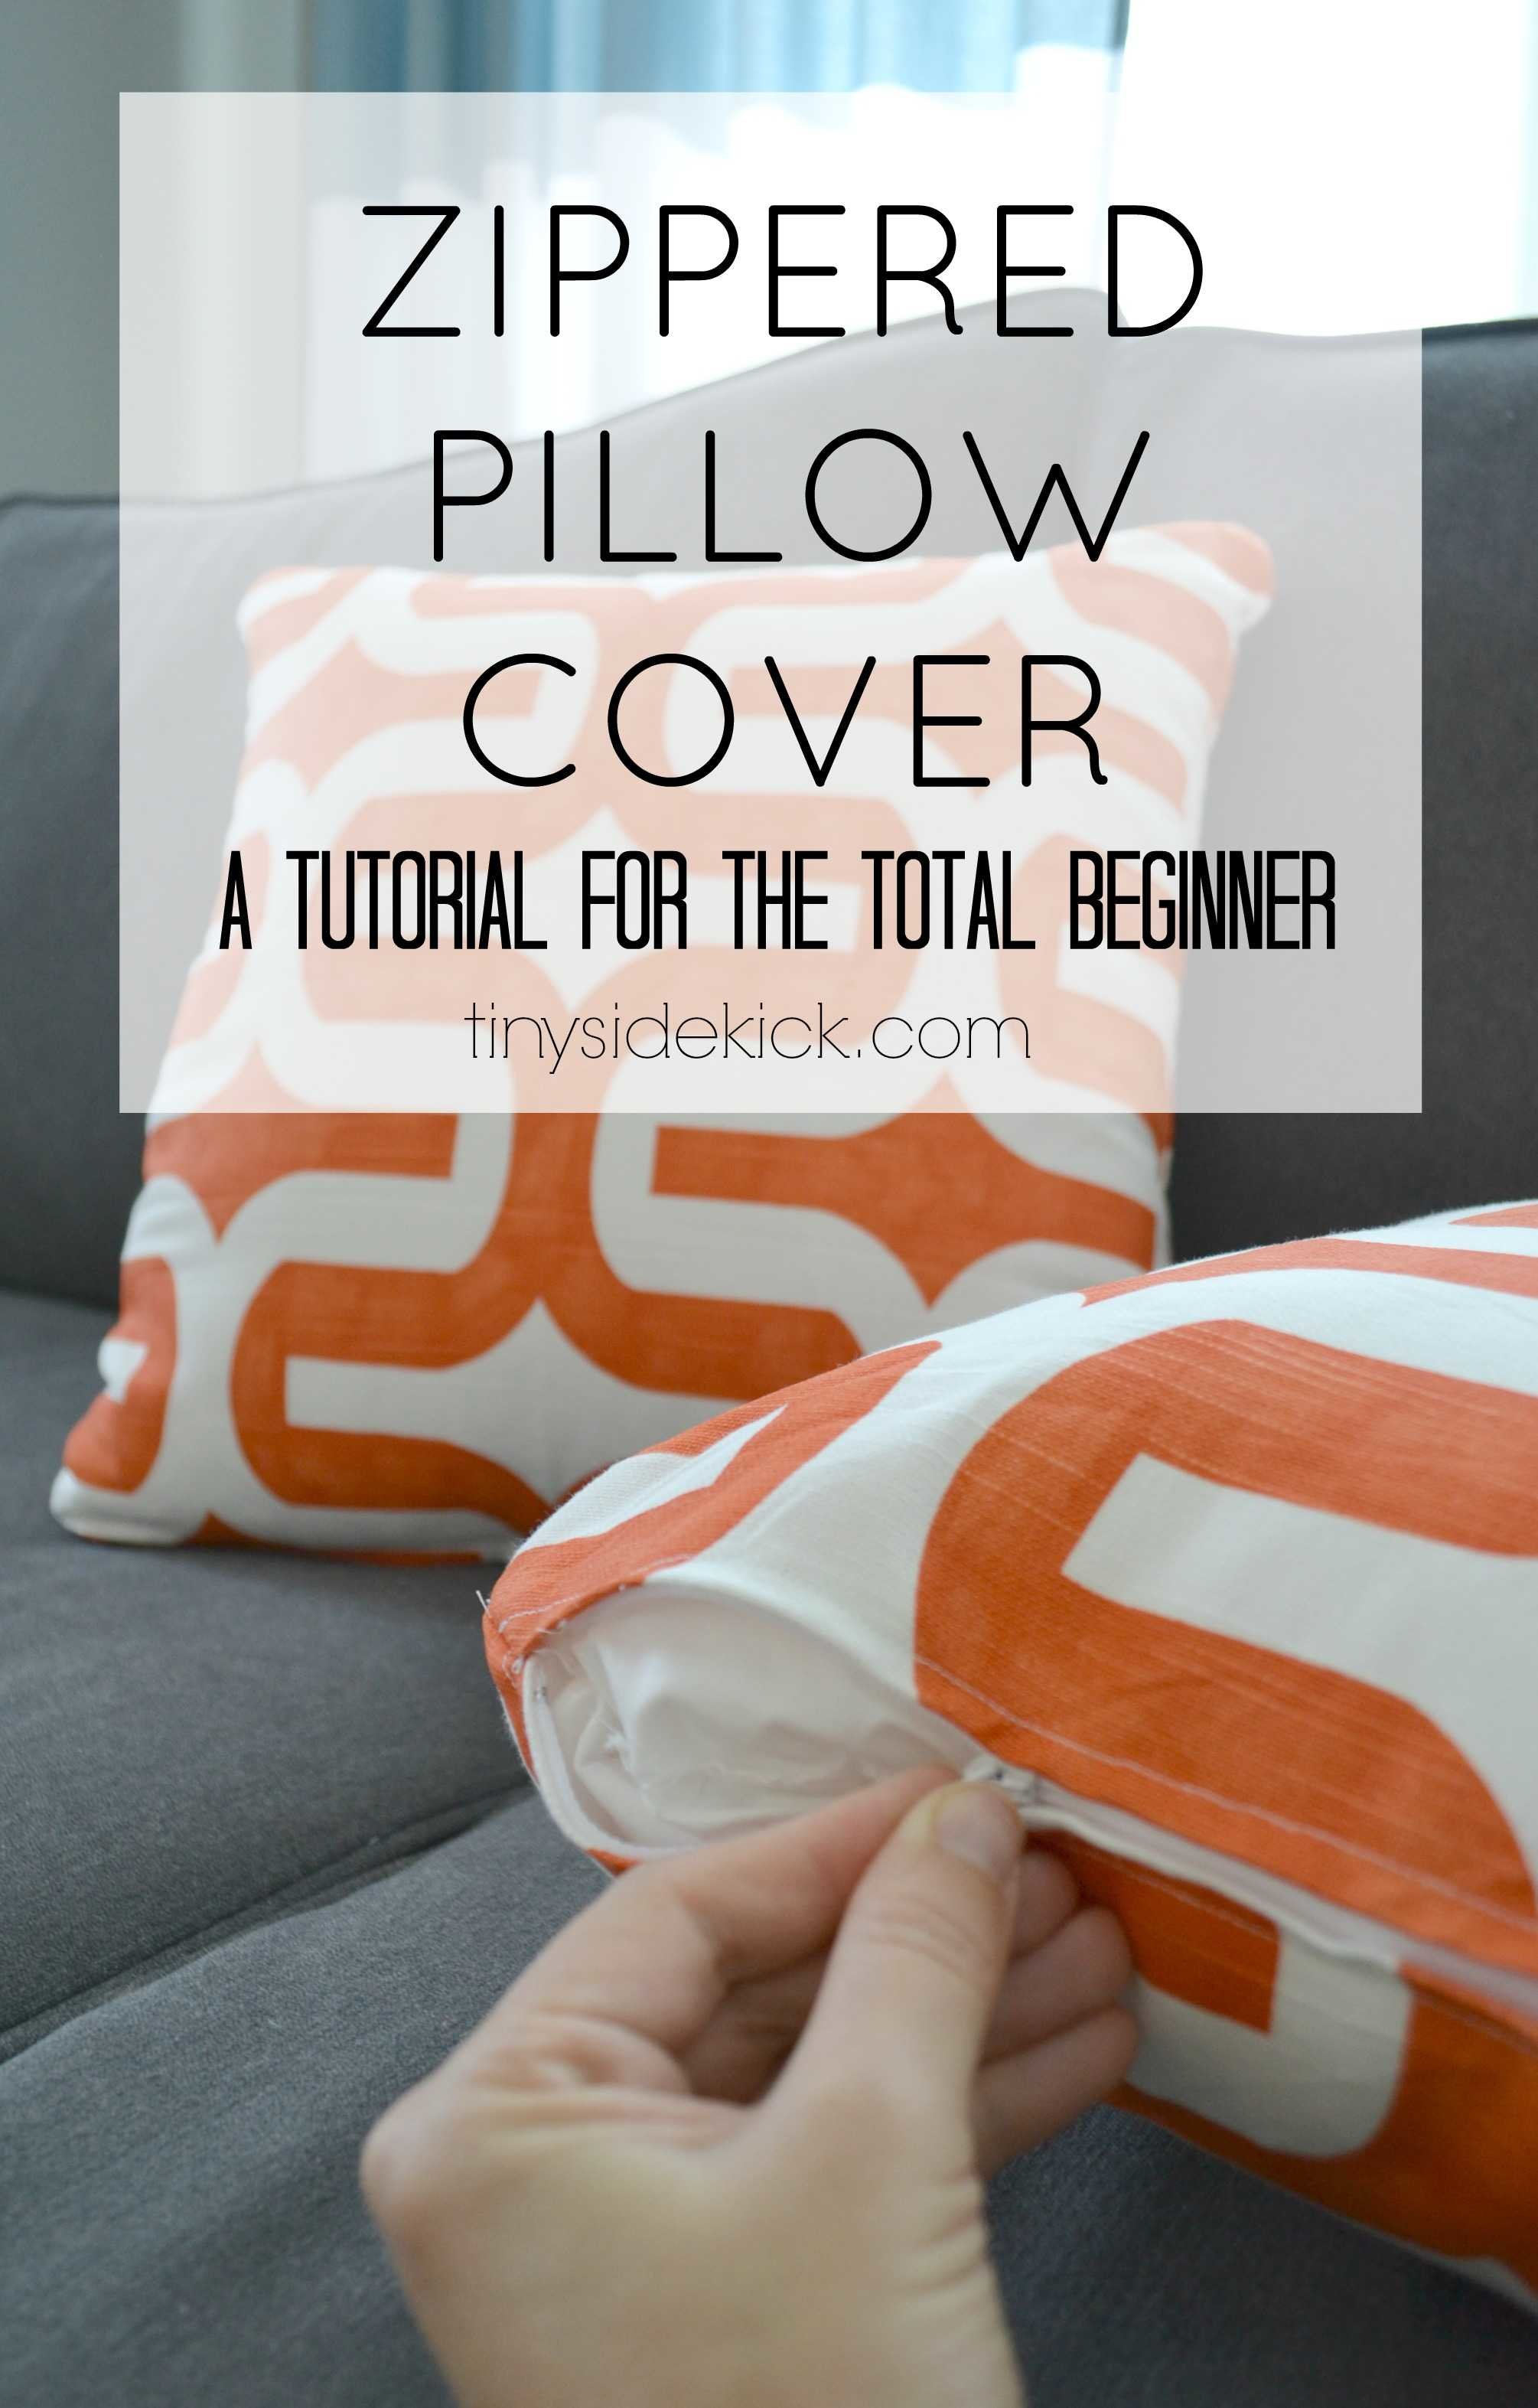 Book Cover Sewing Zip : How to make a zippered pillow cover tutorial for beginners